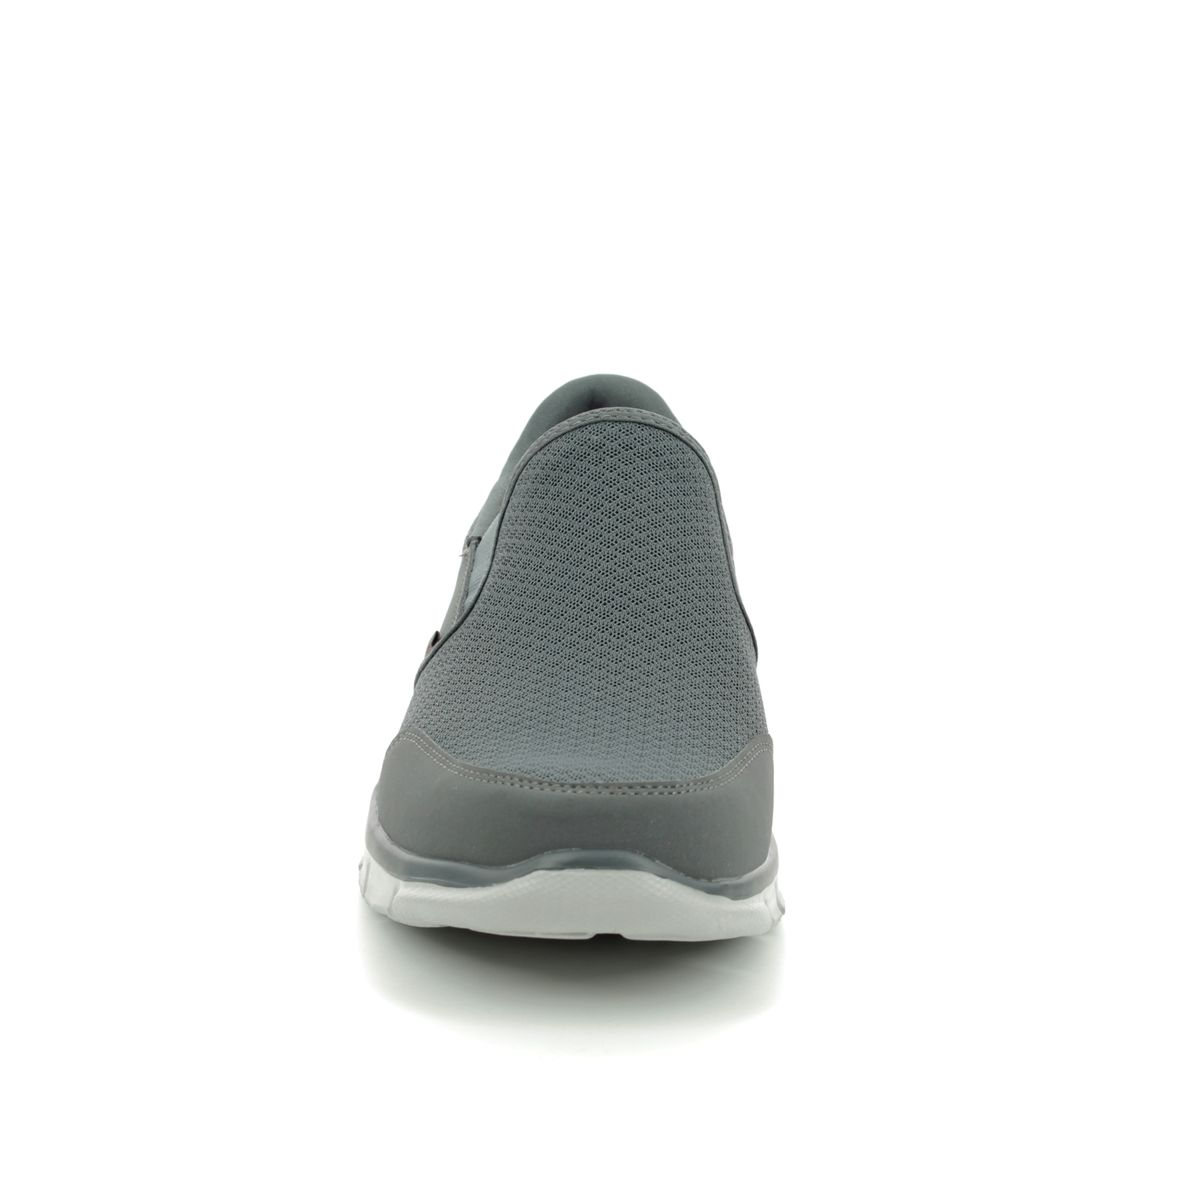 61e46a40521dc Skechers Equalizer Persistent 51361 CHAR Charcoal trainers